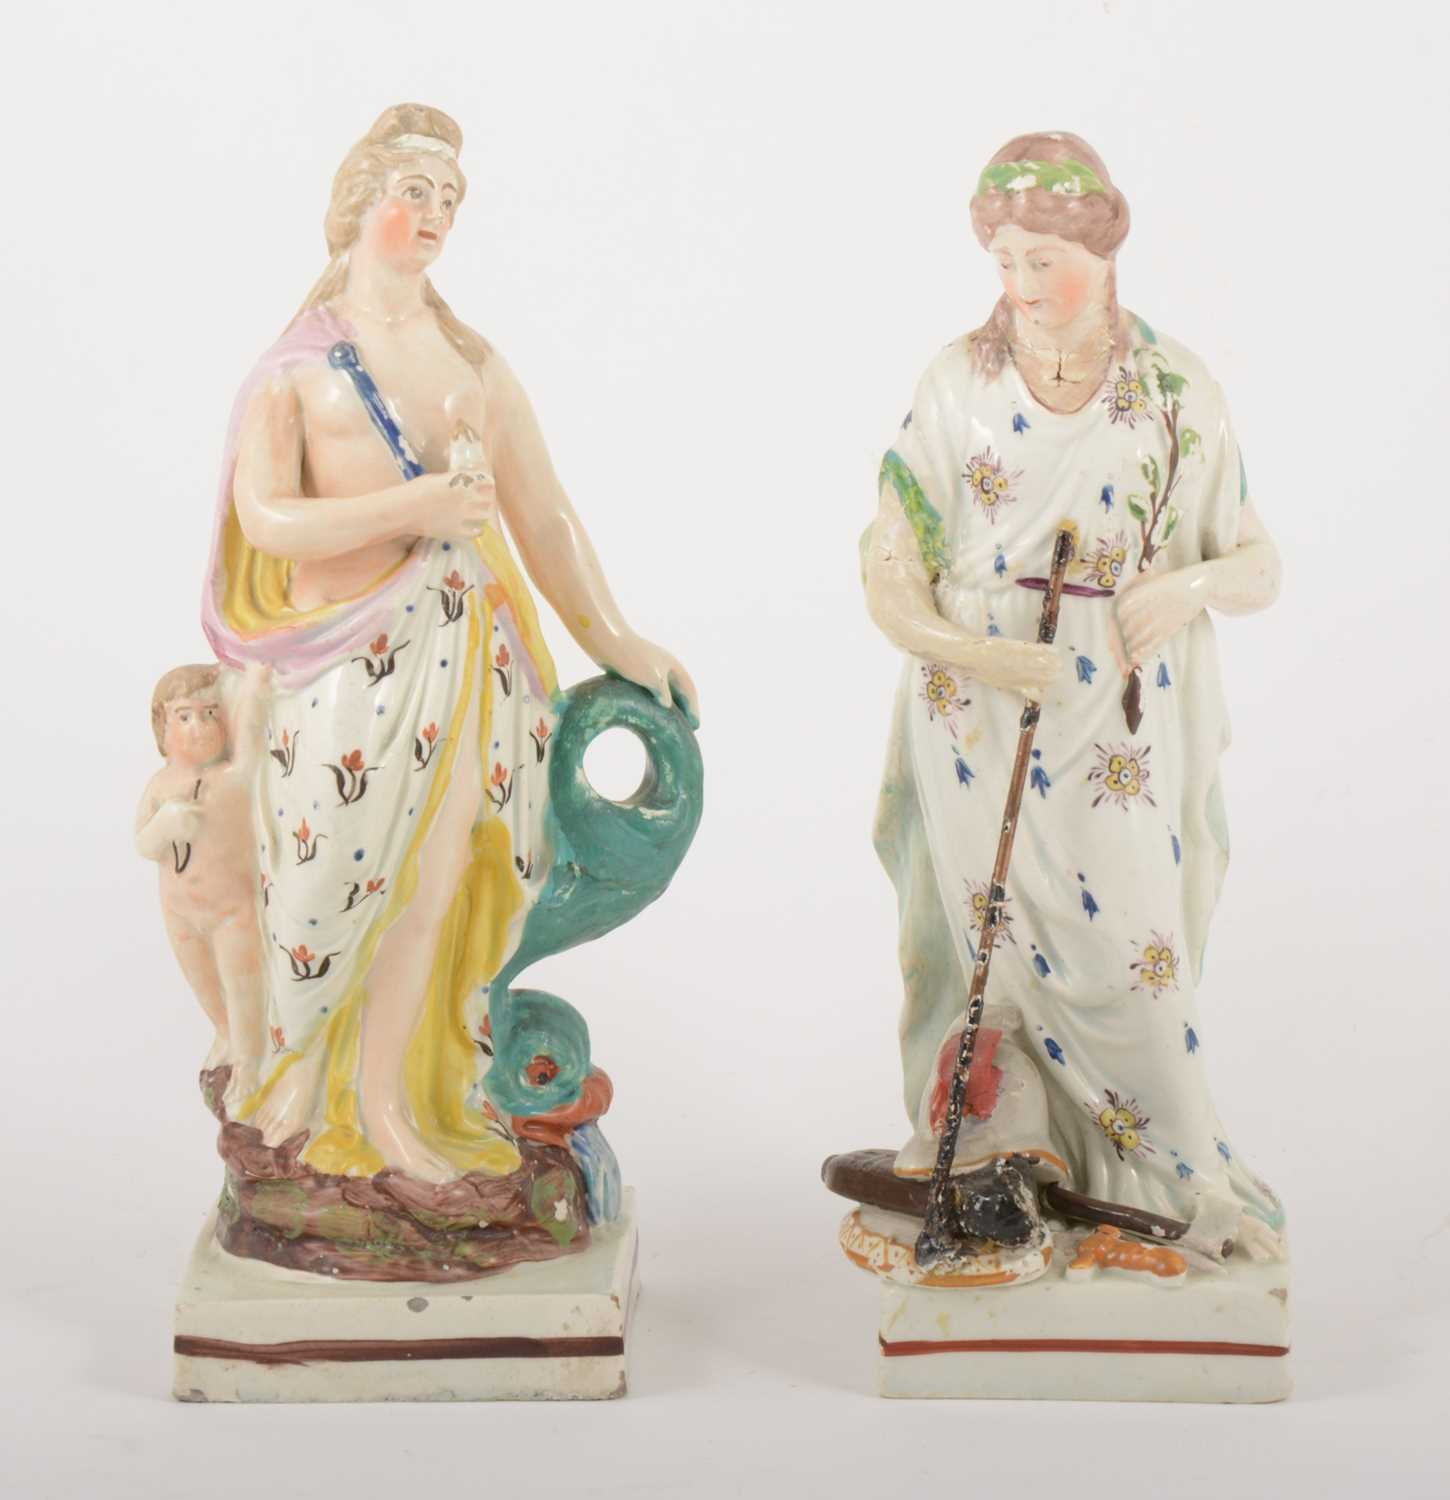 Lot 52 - A Staffordshire earthenware figure of Venus with Cupid, in the manner of Enoch Wood, circa 1820